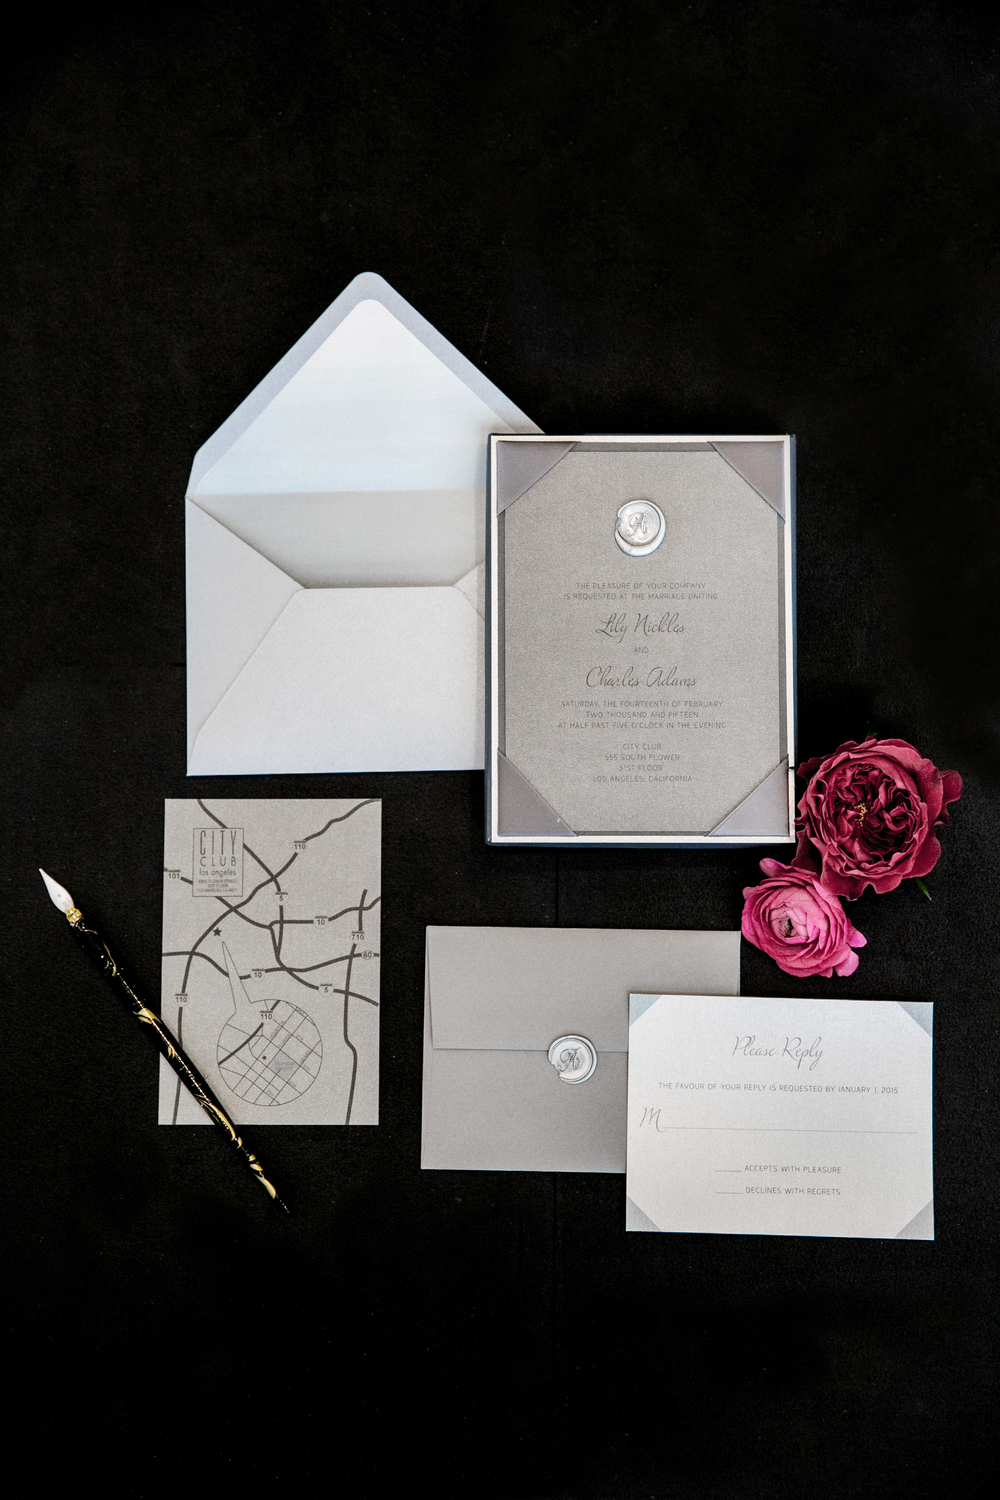 Grey monochromatic invitation with wax seal details.